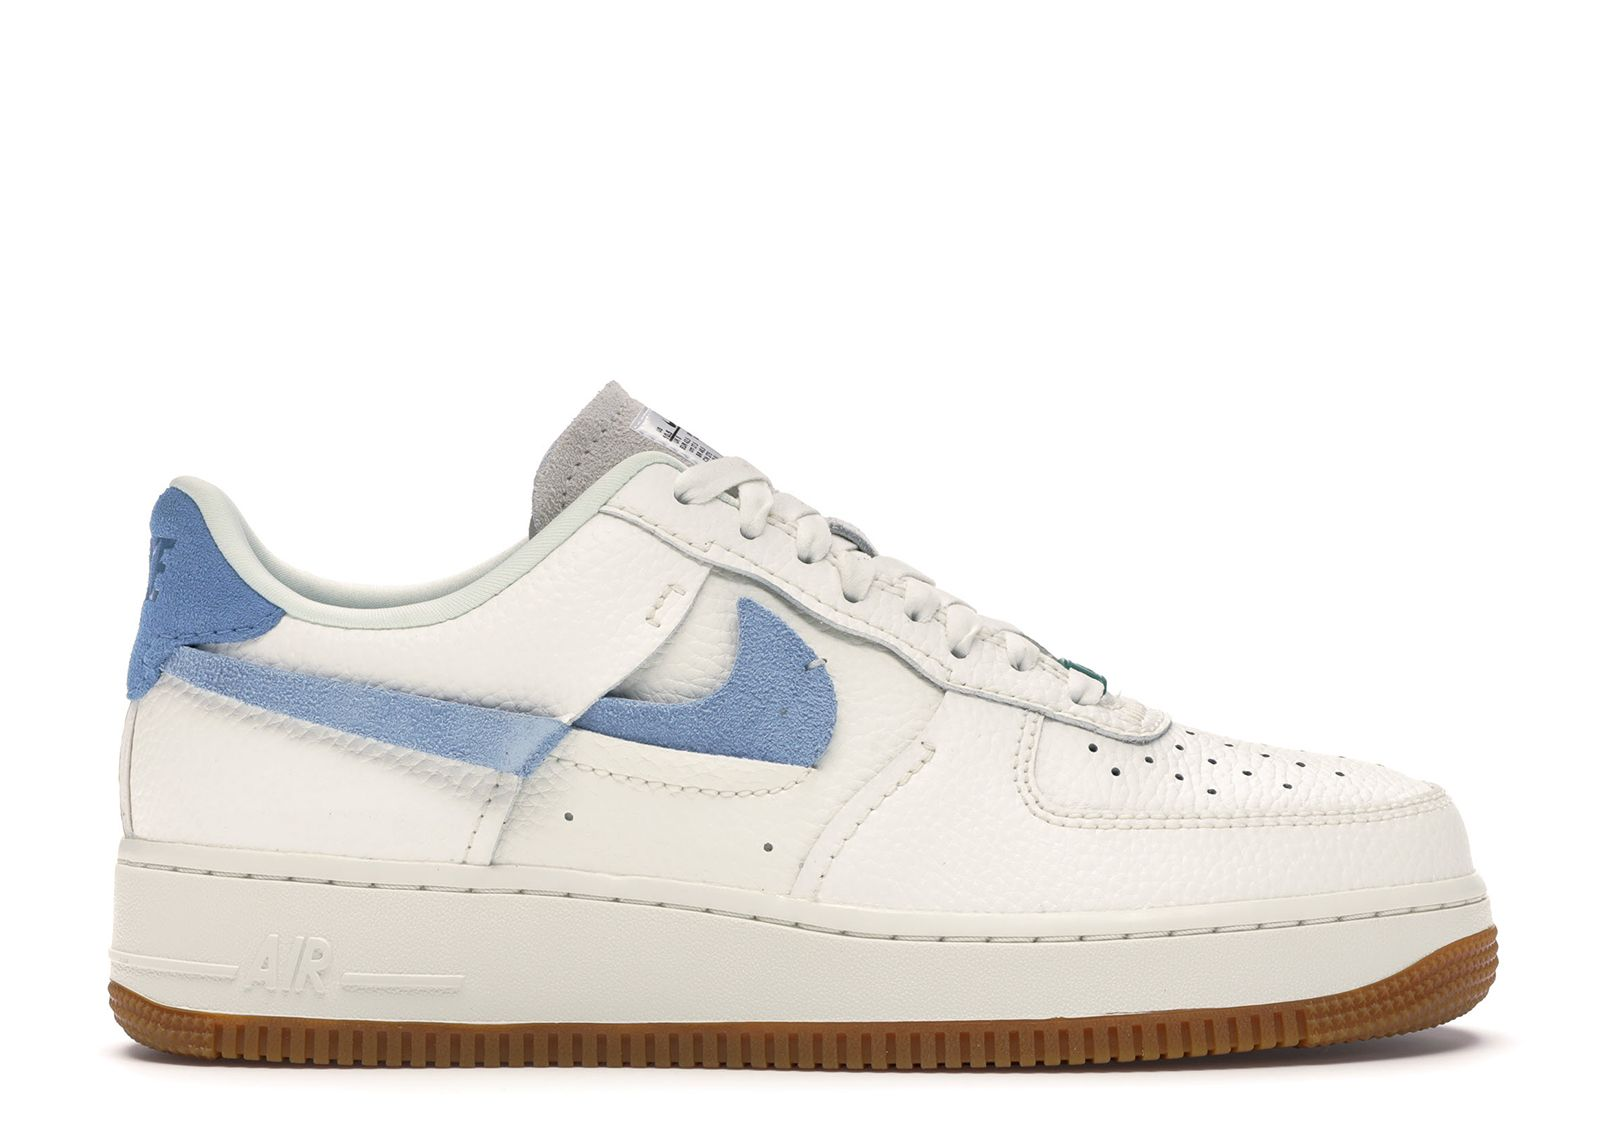 Nike Air Force 1 Vandalized Sail Mystic Green (w) In Sail